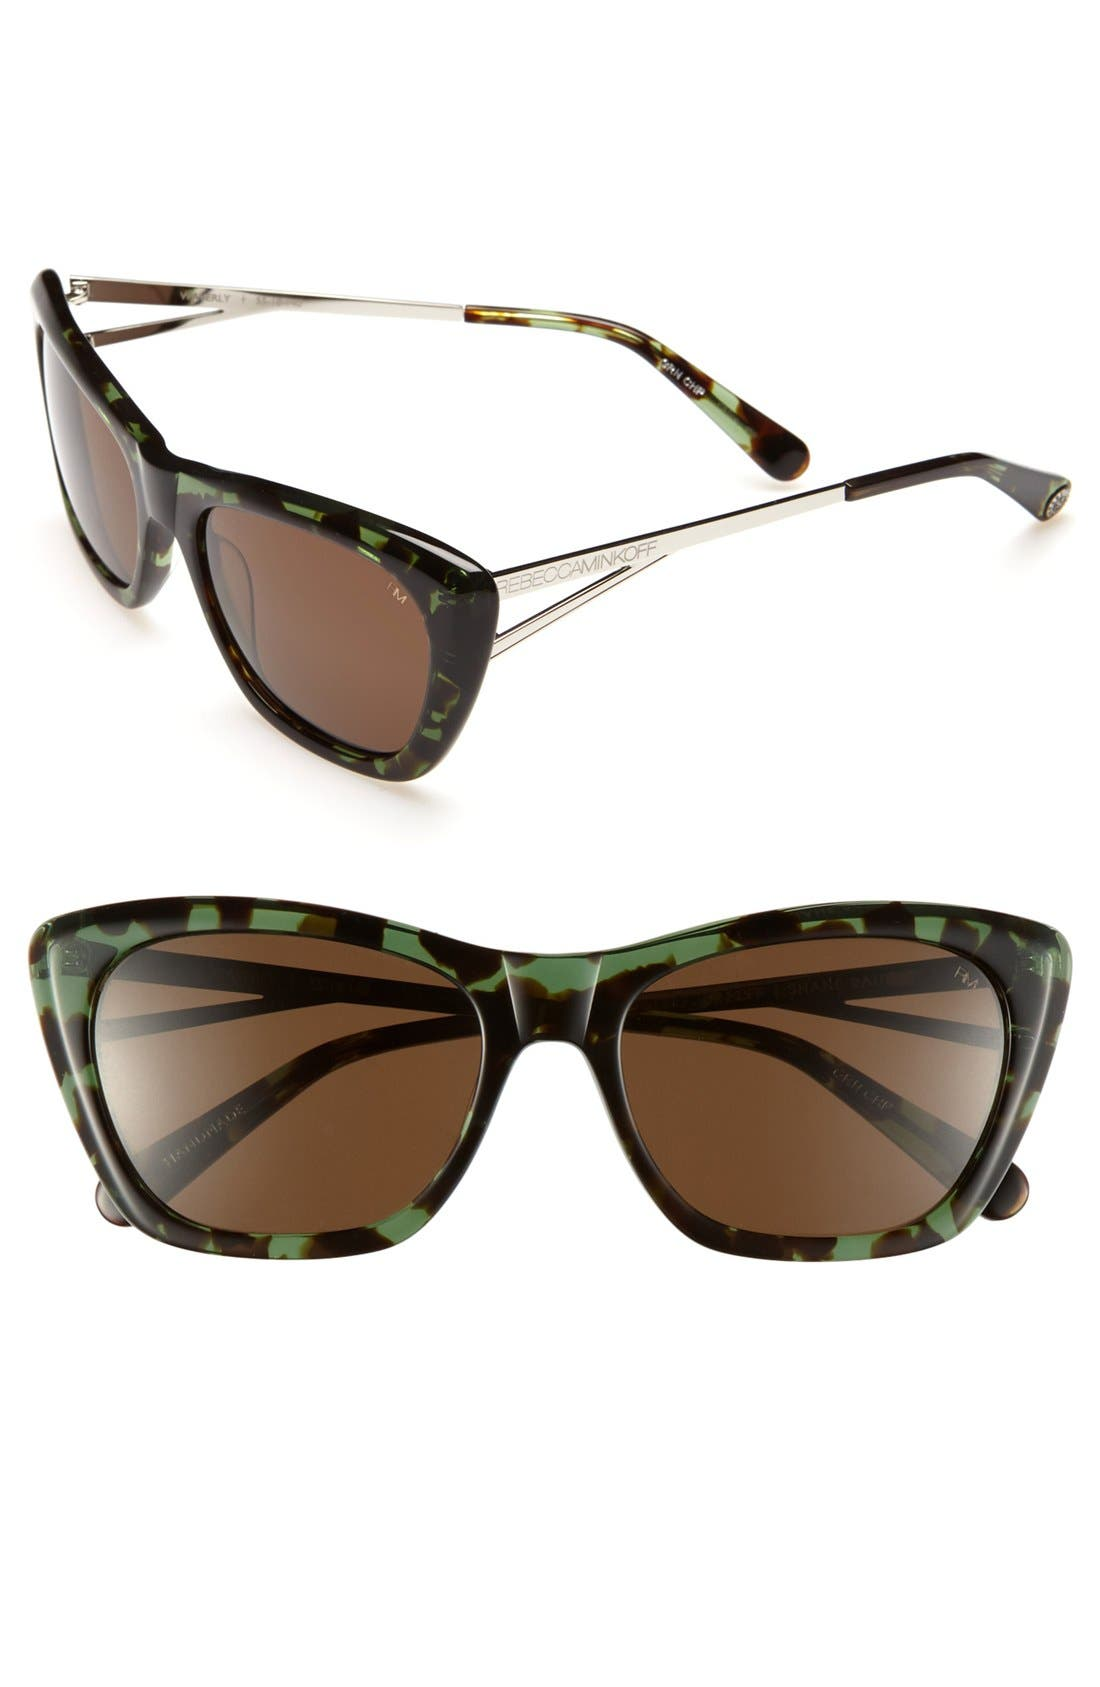 Main Image - Rebecca Minkoff 'Waverly' 55mm Sunglasses